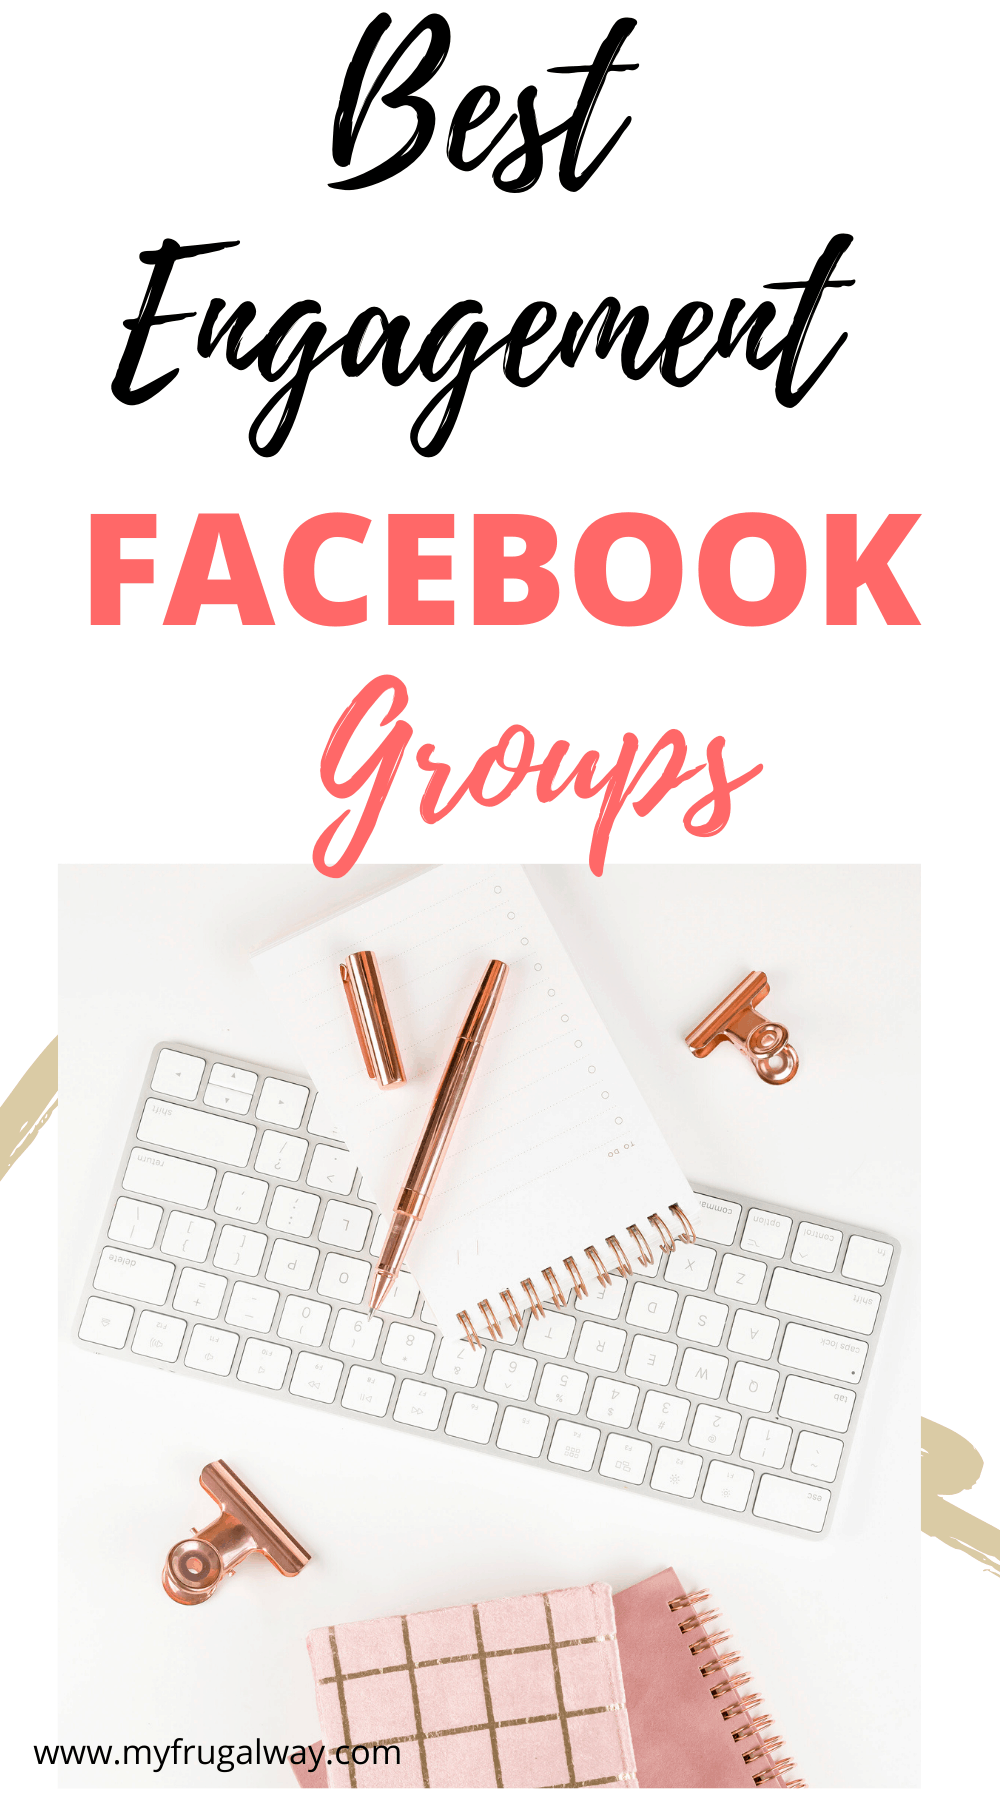 Best facebook engagement groups for interaction posts. Join my engagement facebook group fir growth.